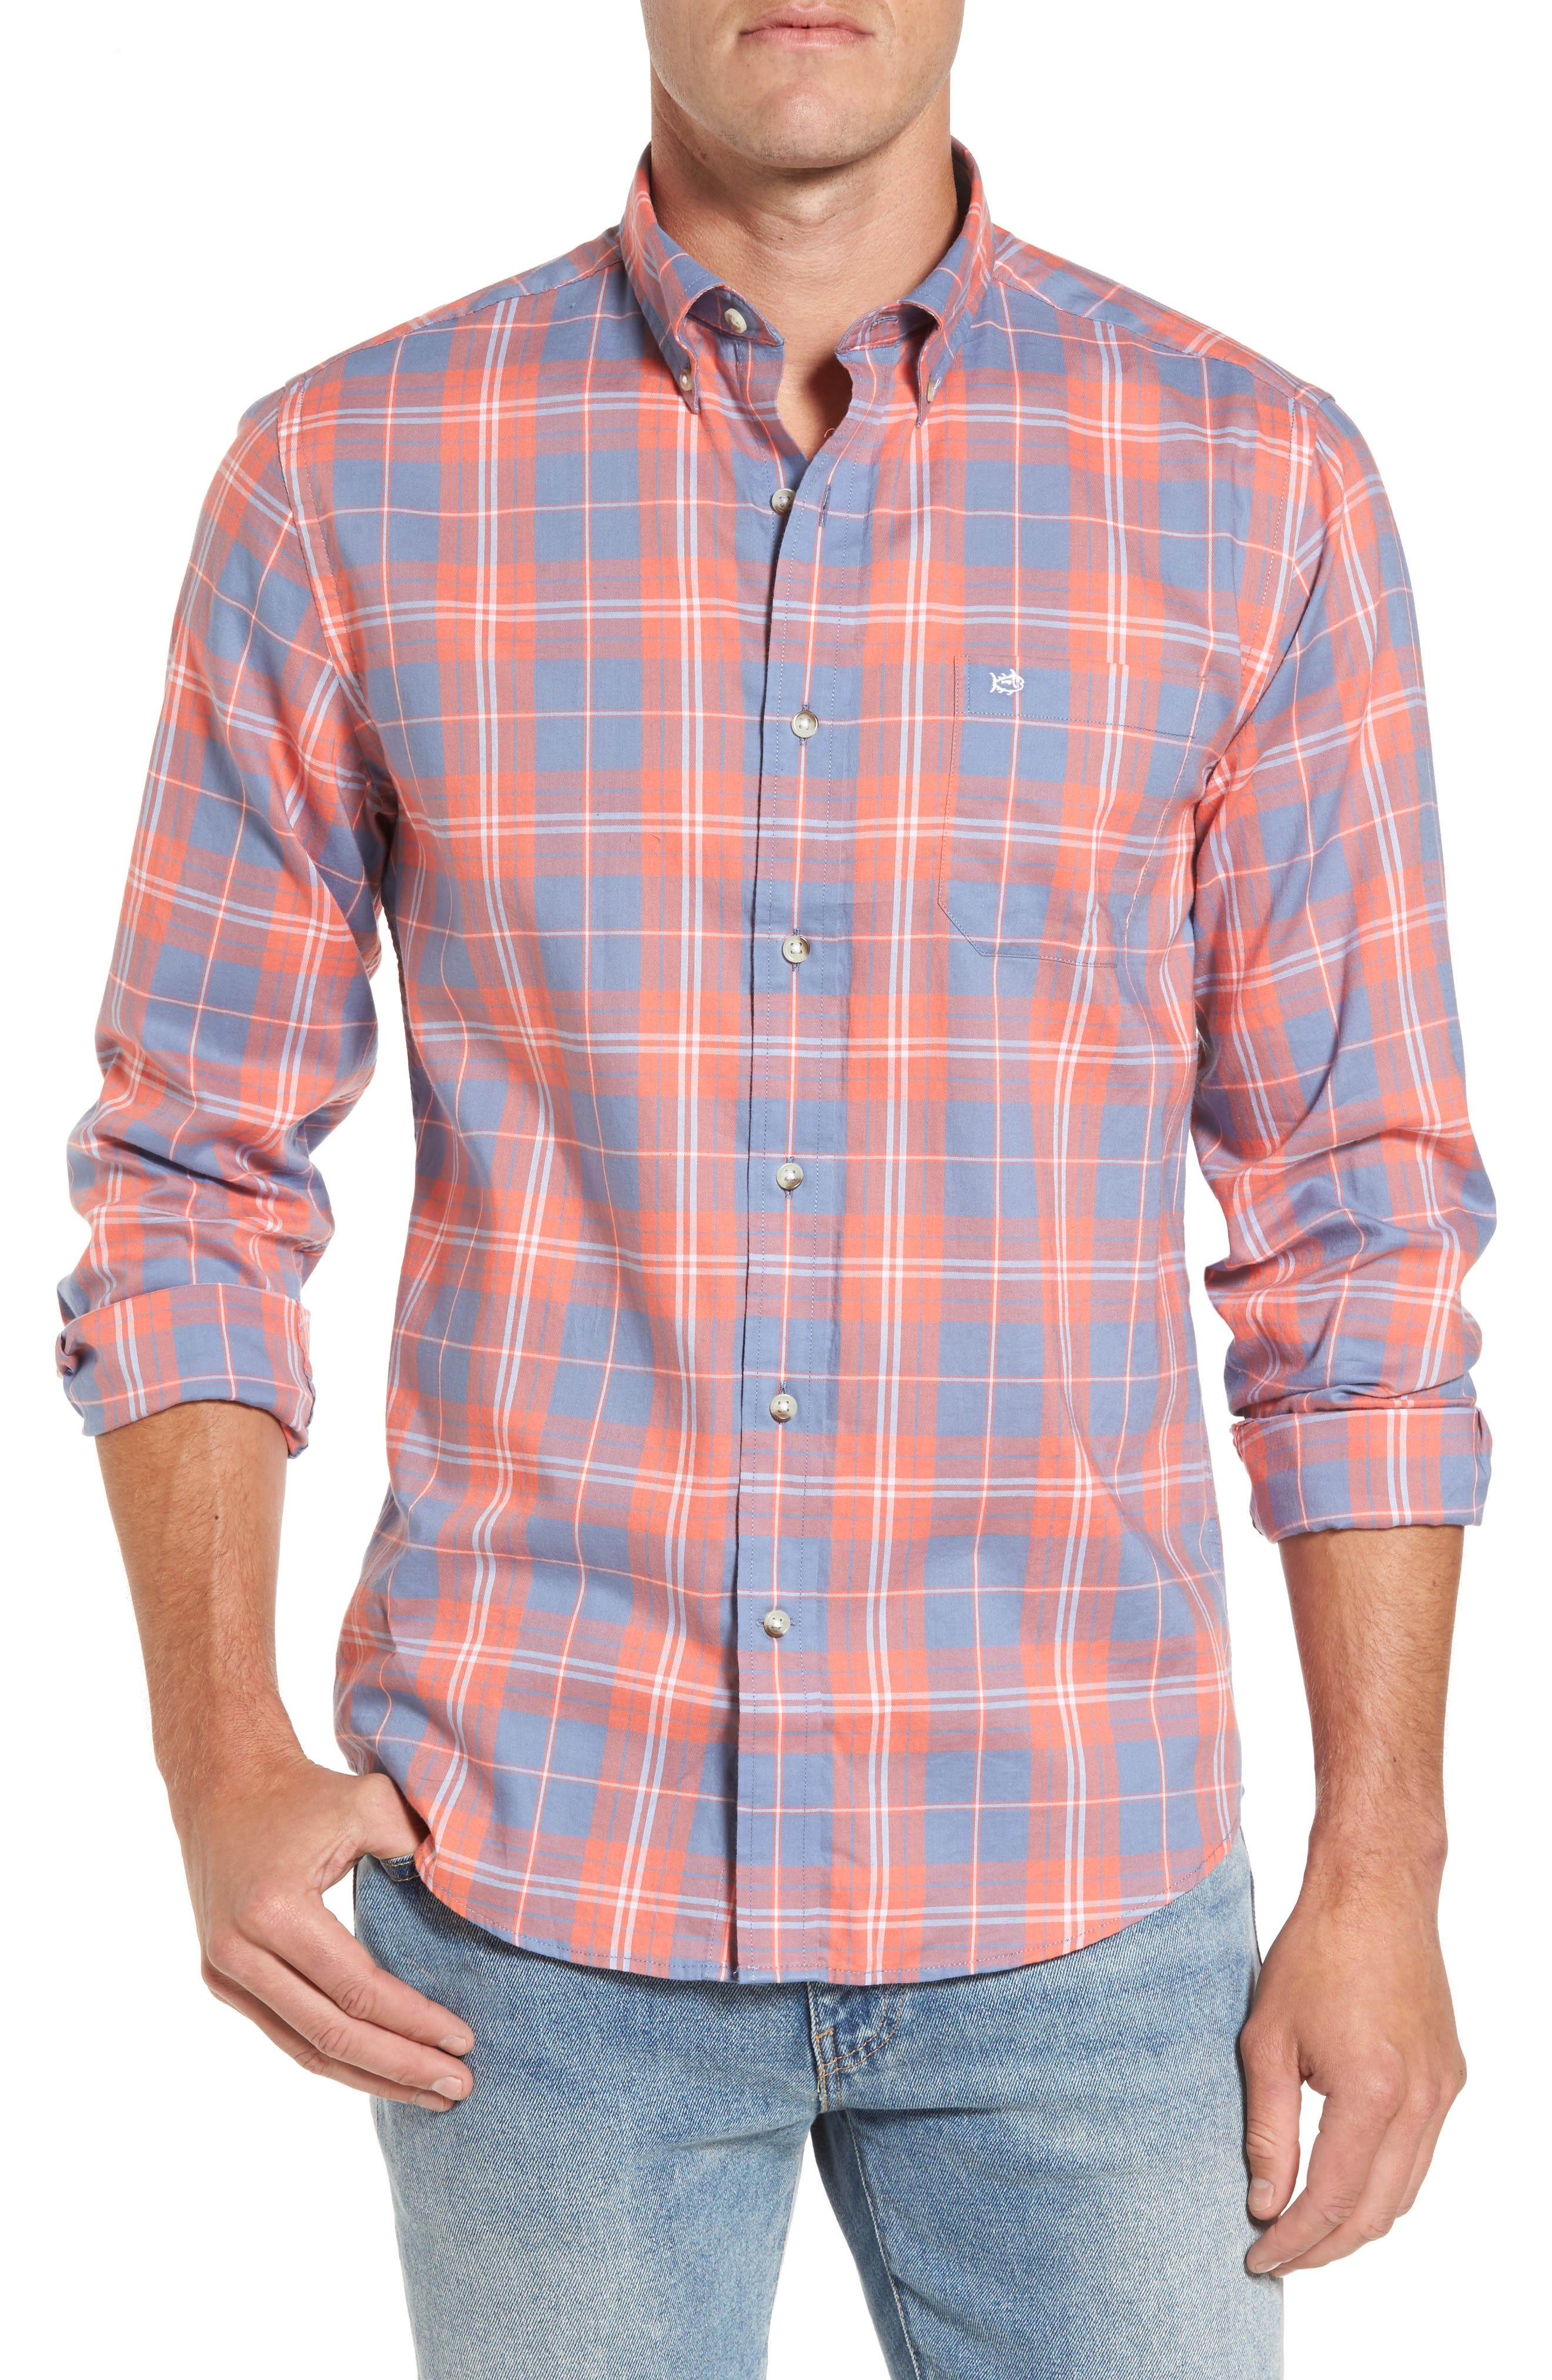 The Logo Over-Dyed Plaid Slim Fit Shirt takes a beating with hand grinding for perfectly distressed edges and seams. Don't worry, this rugged all-cotton shirt can take it.5/5(2).